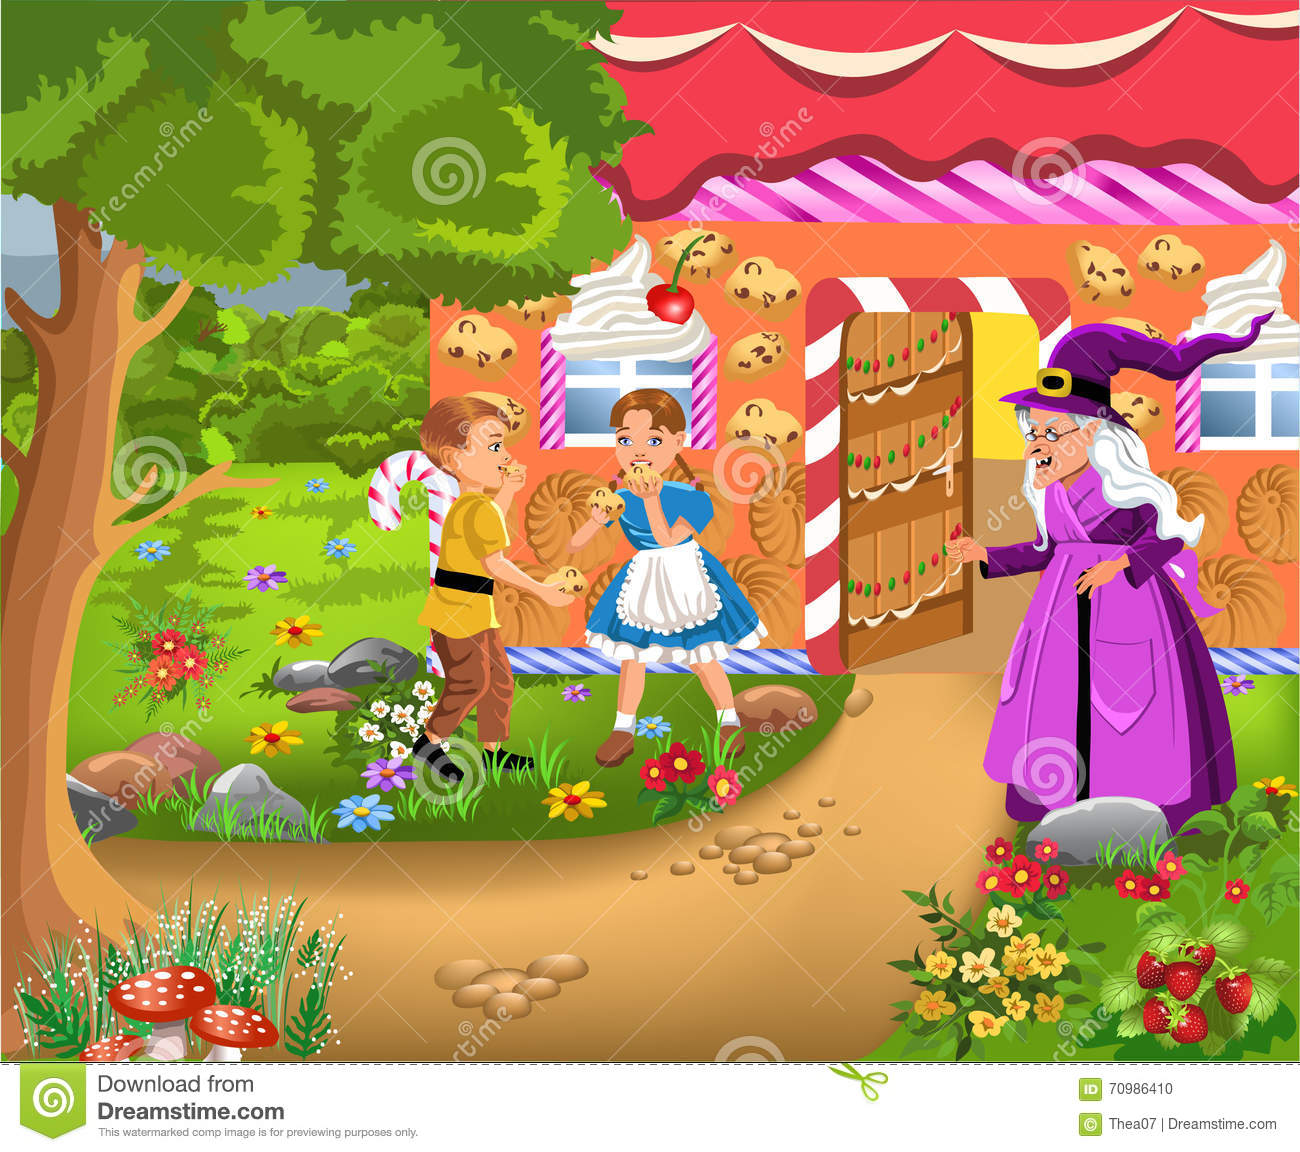 hansel and gretel stock vector. illustration of brother - 70986410